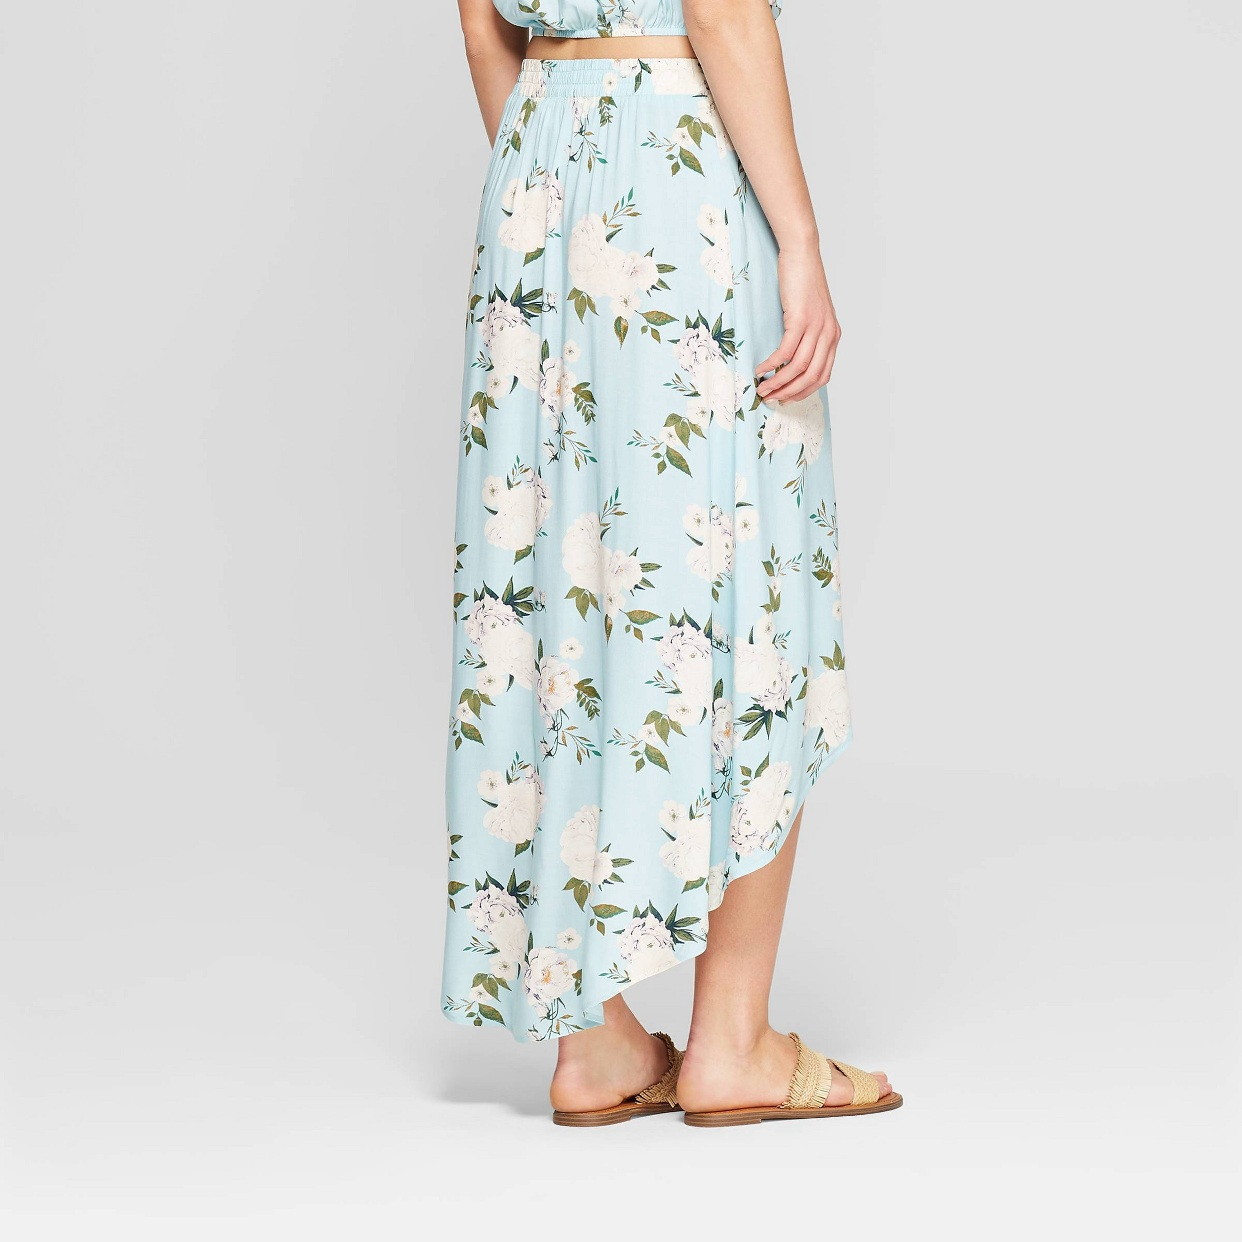 - GIve me all the floral maxi skirts! This one is super cute with the hi low hem and is so light for summer. A new fave!Find it here.